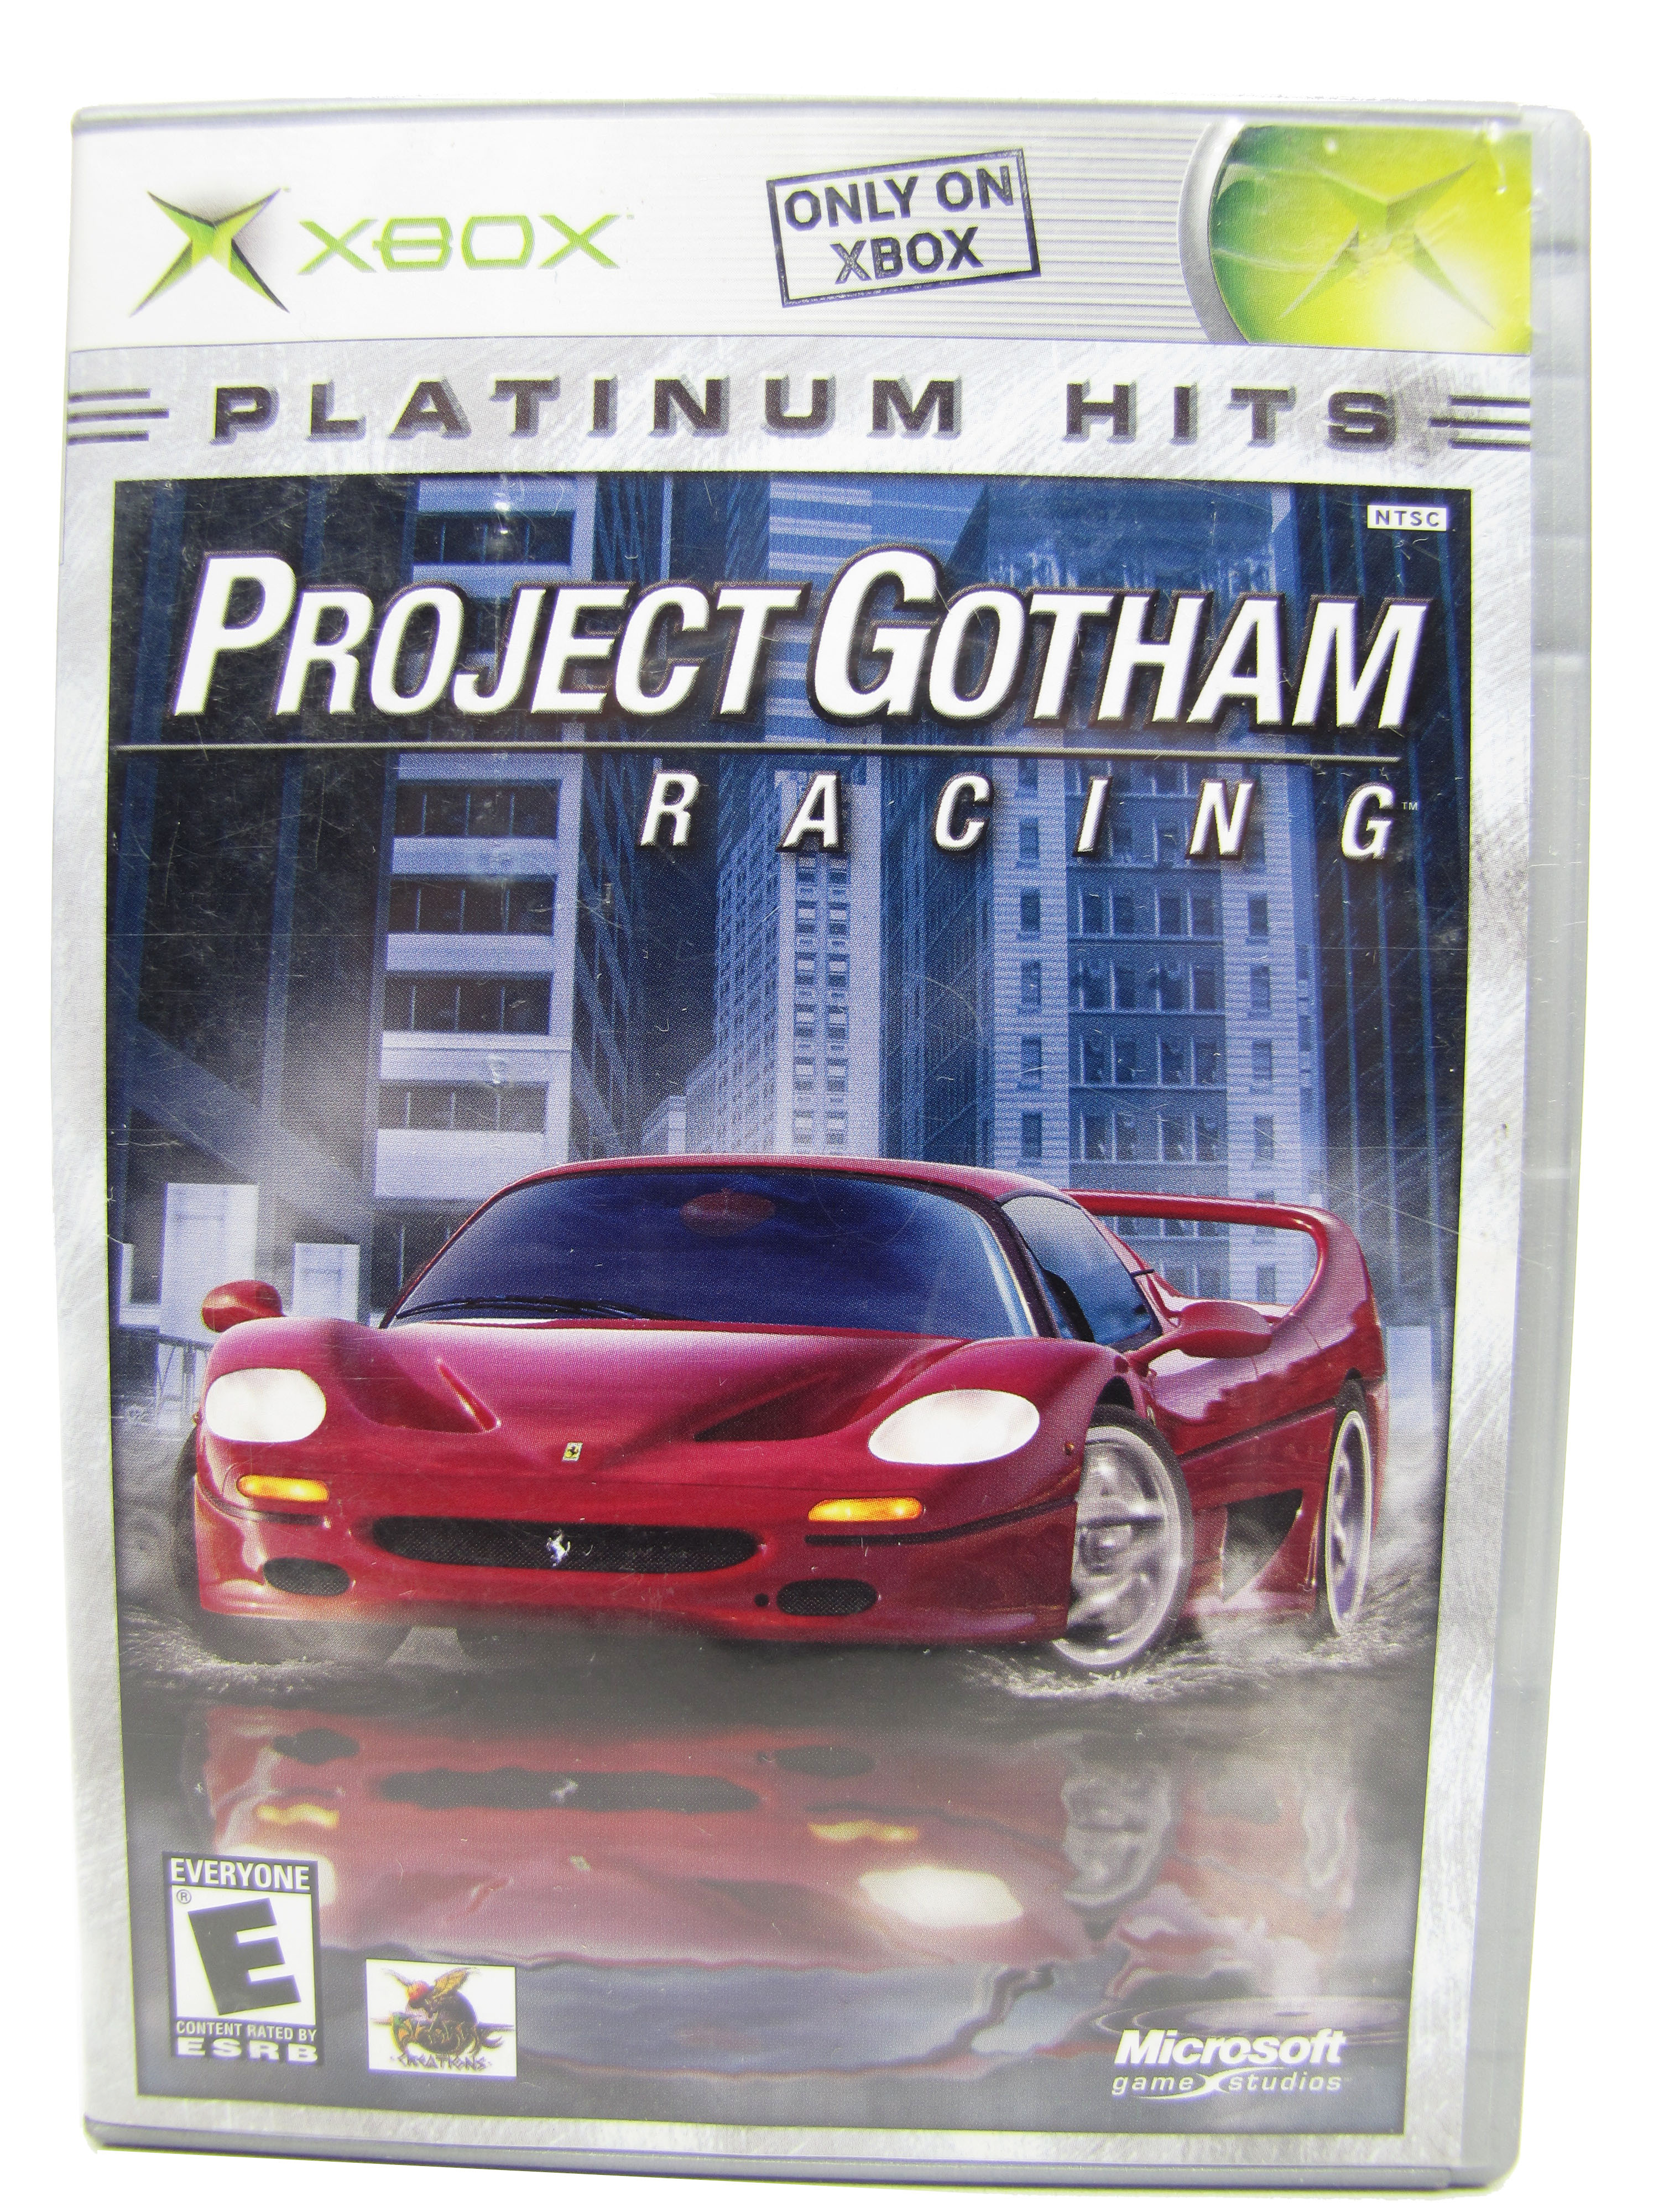 XBOX Project Gotham Racing Complete - 2003